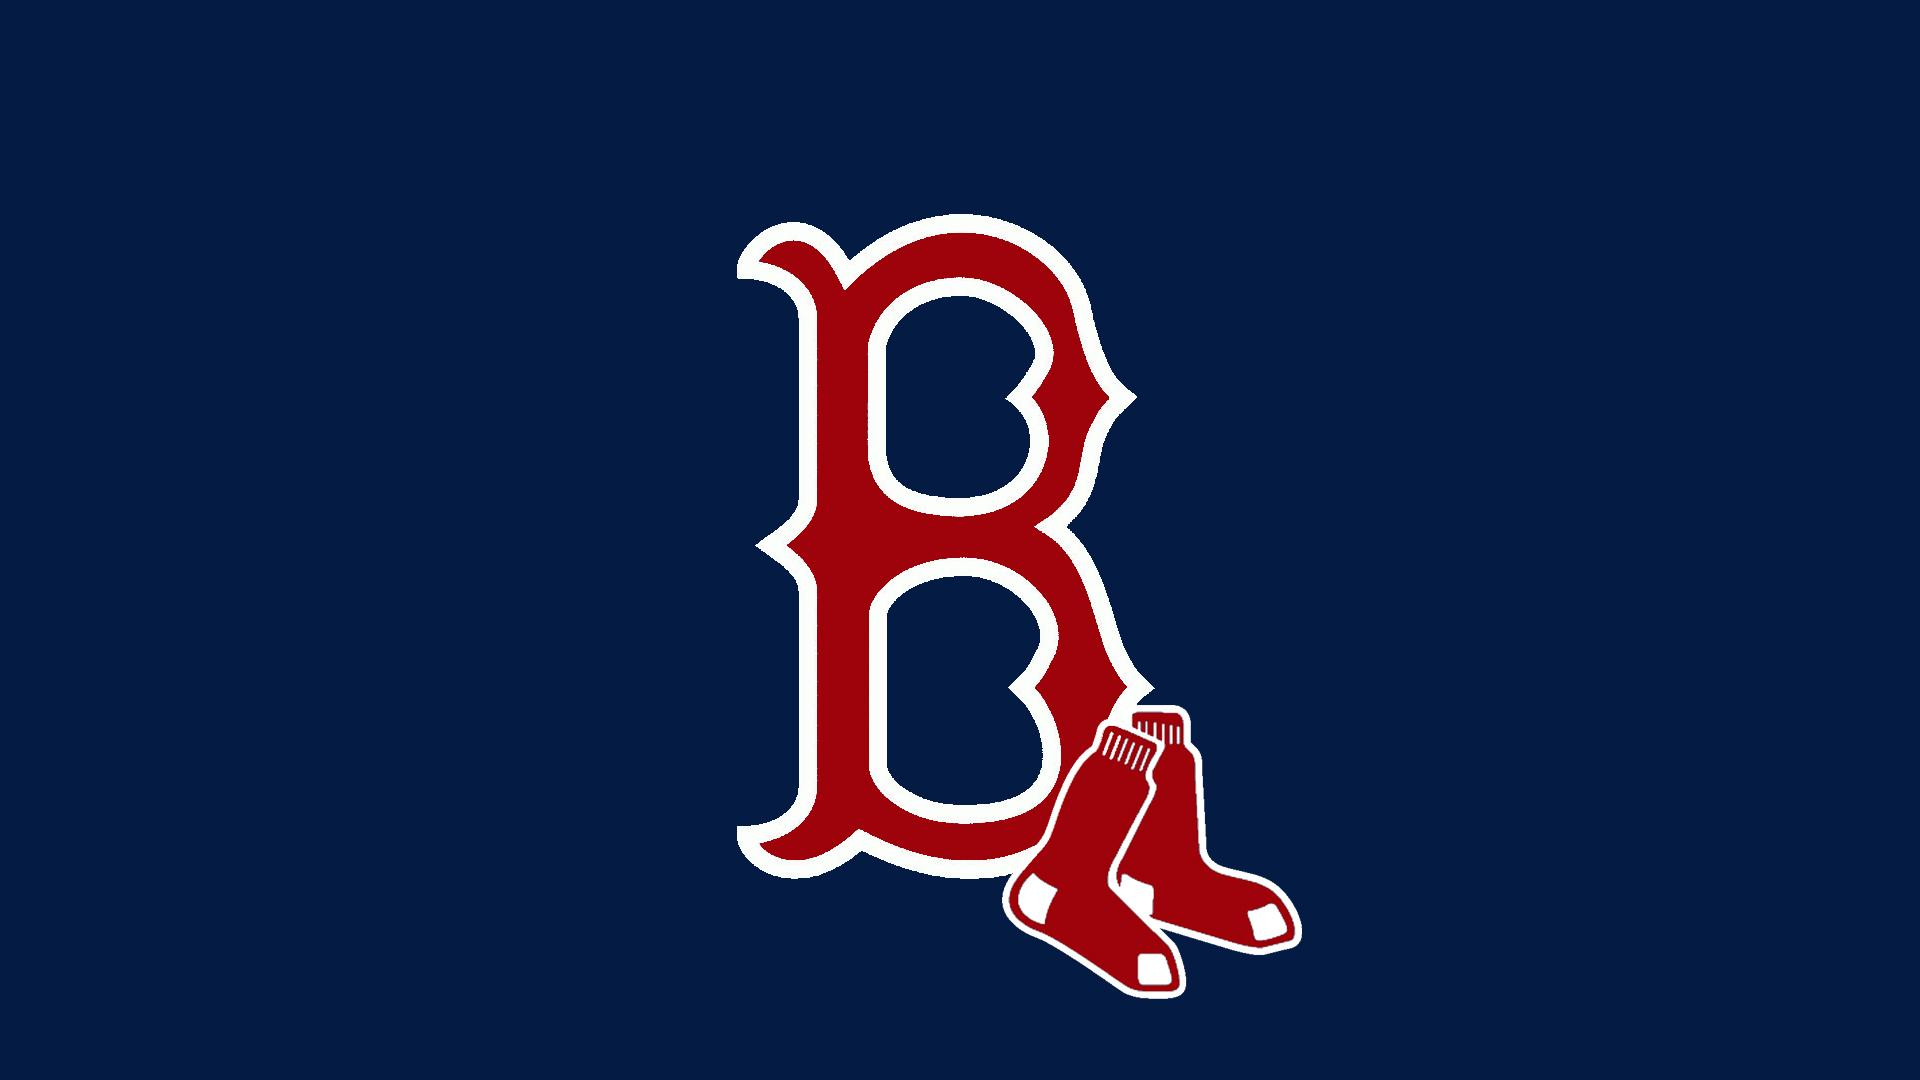 Boston Red Sox wallpapers HD quality